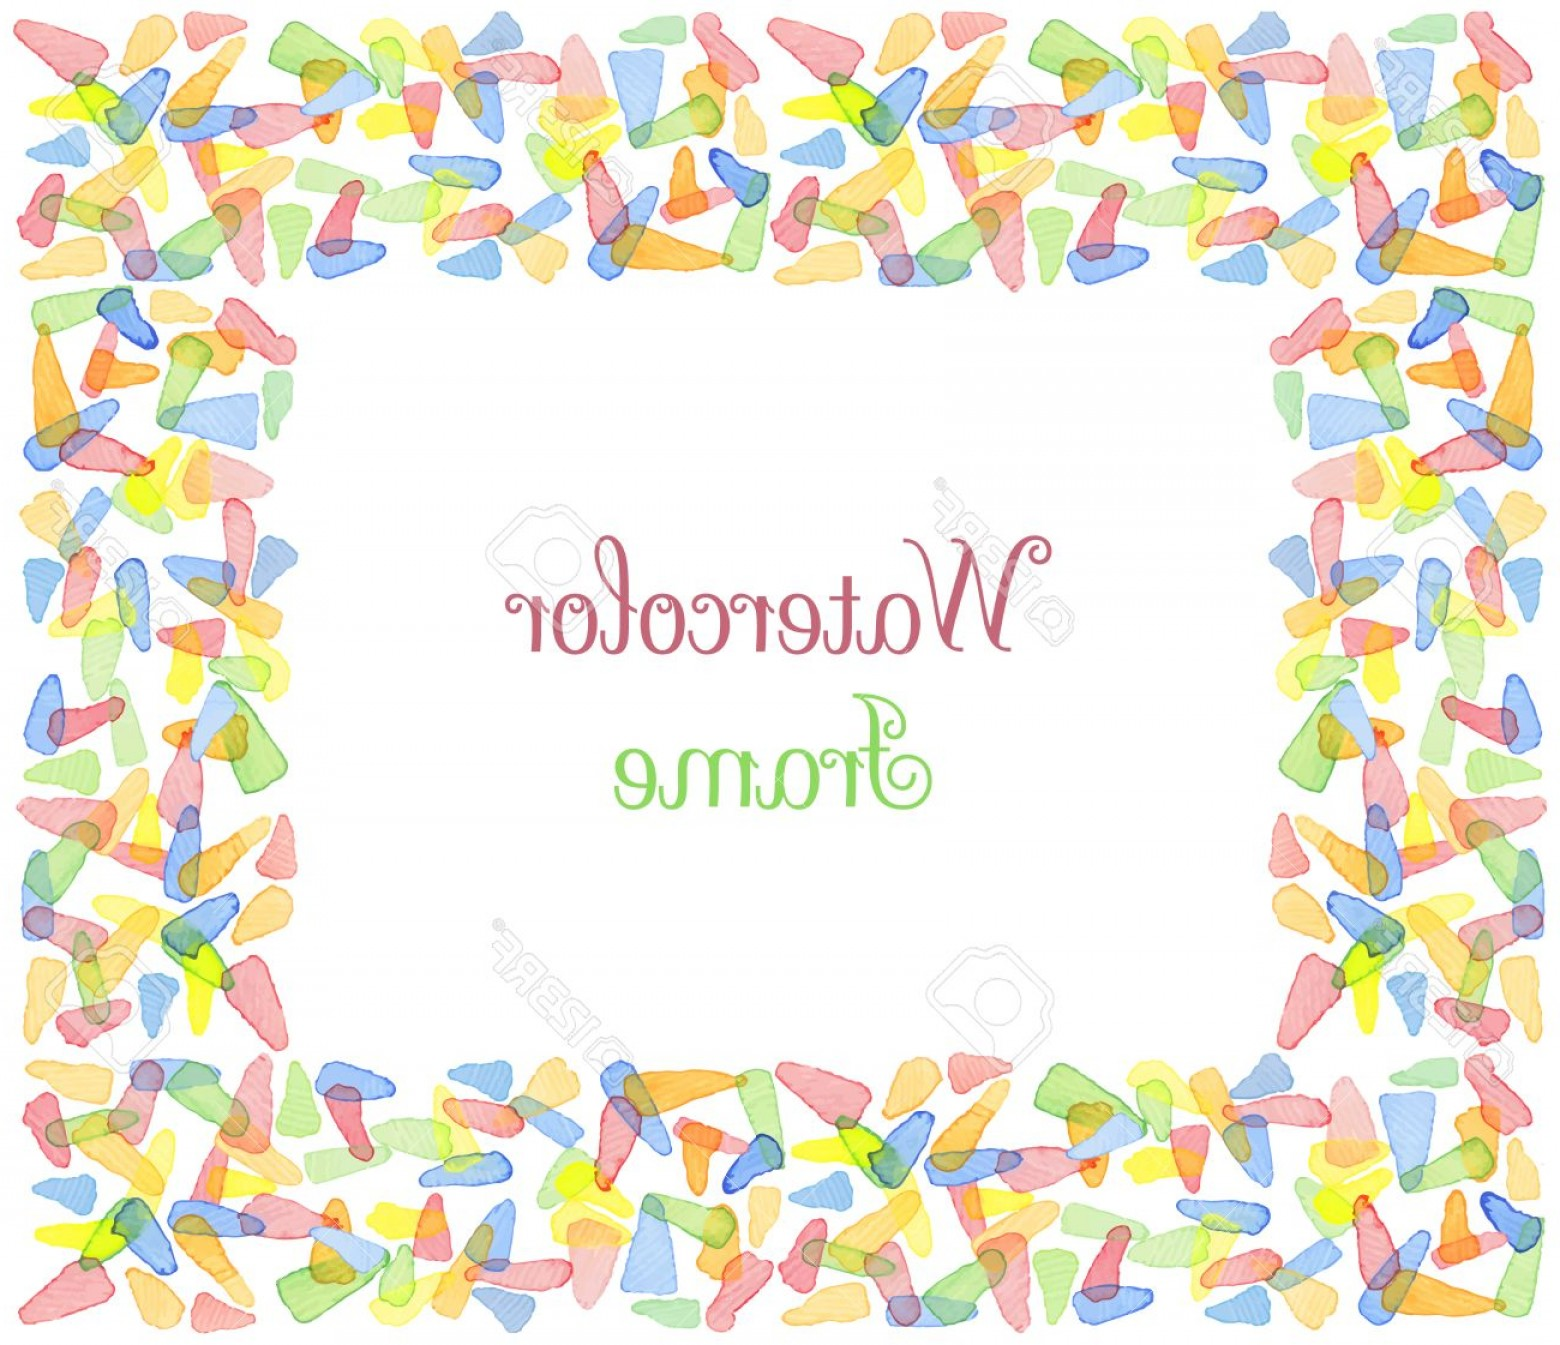 1560x1345 Photostock Vector Hand Painted Water Color Frame With Text Cute